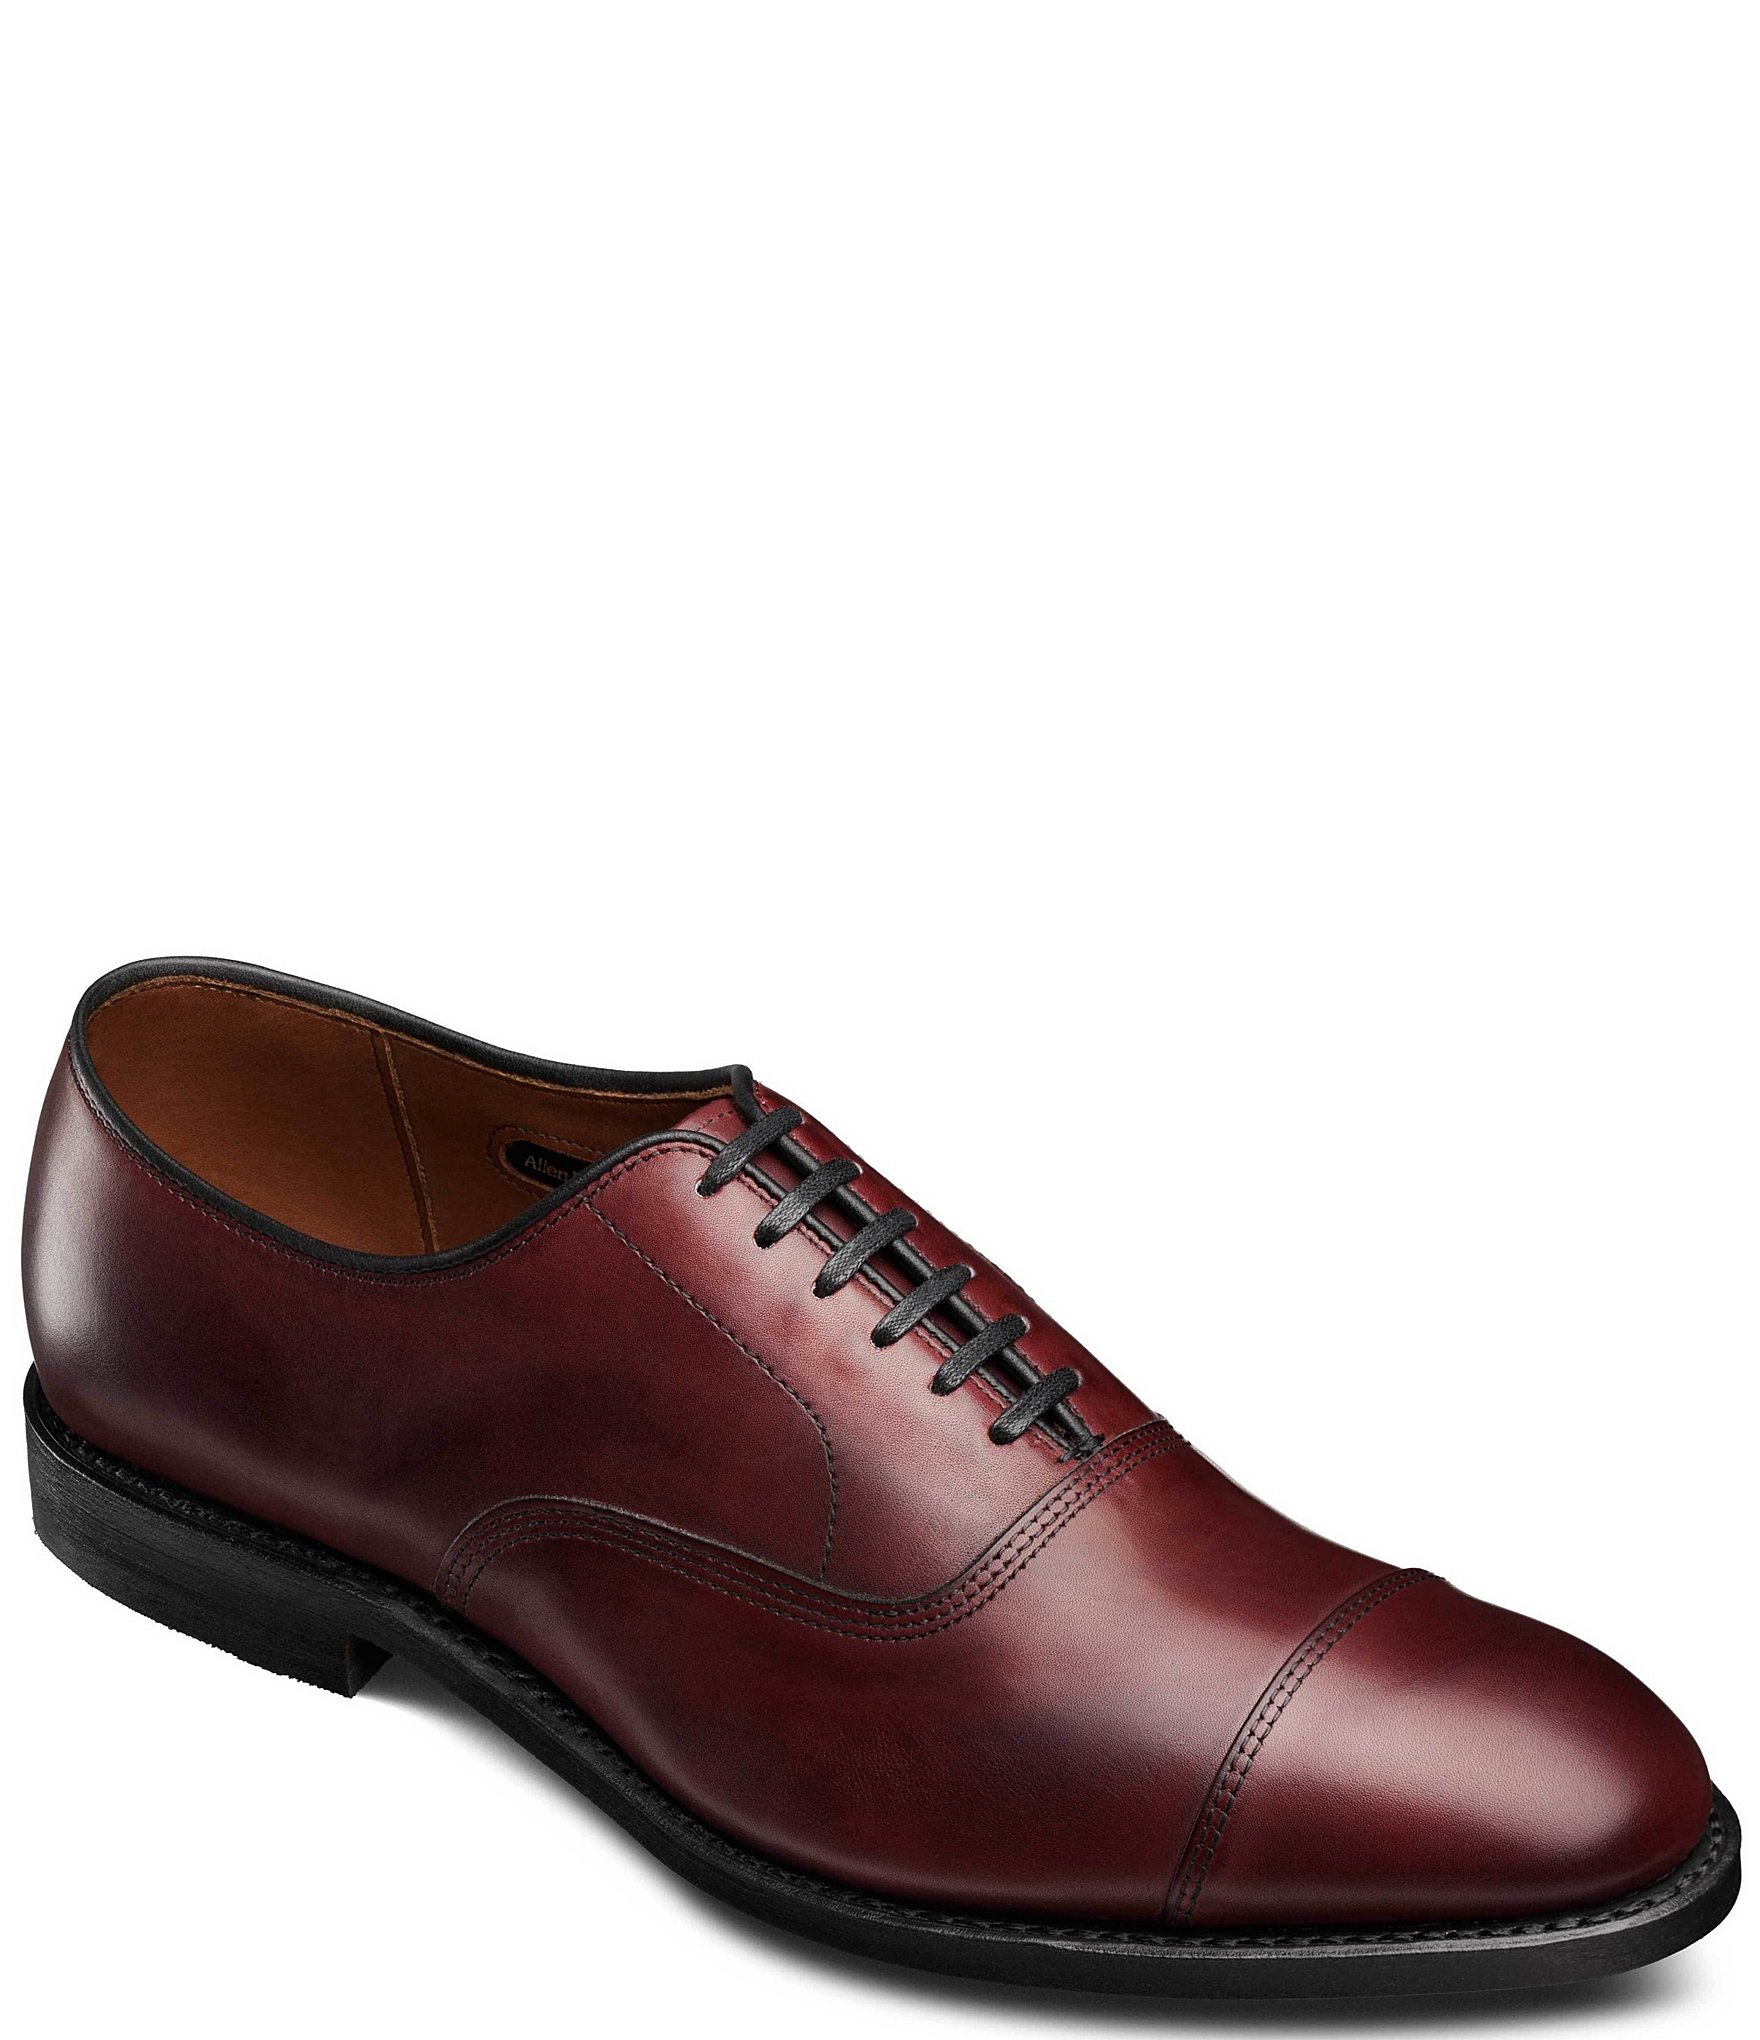 Allen Edmonds Park Avenue Cap Toe Leather Dress Oxfords | Dillard's